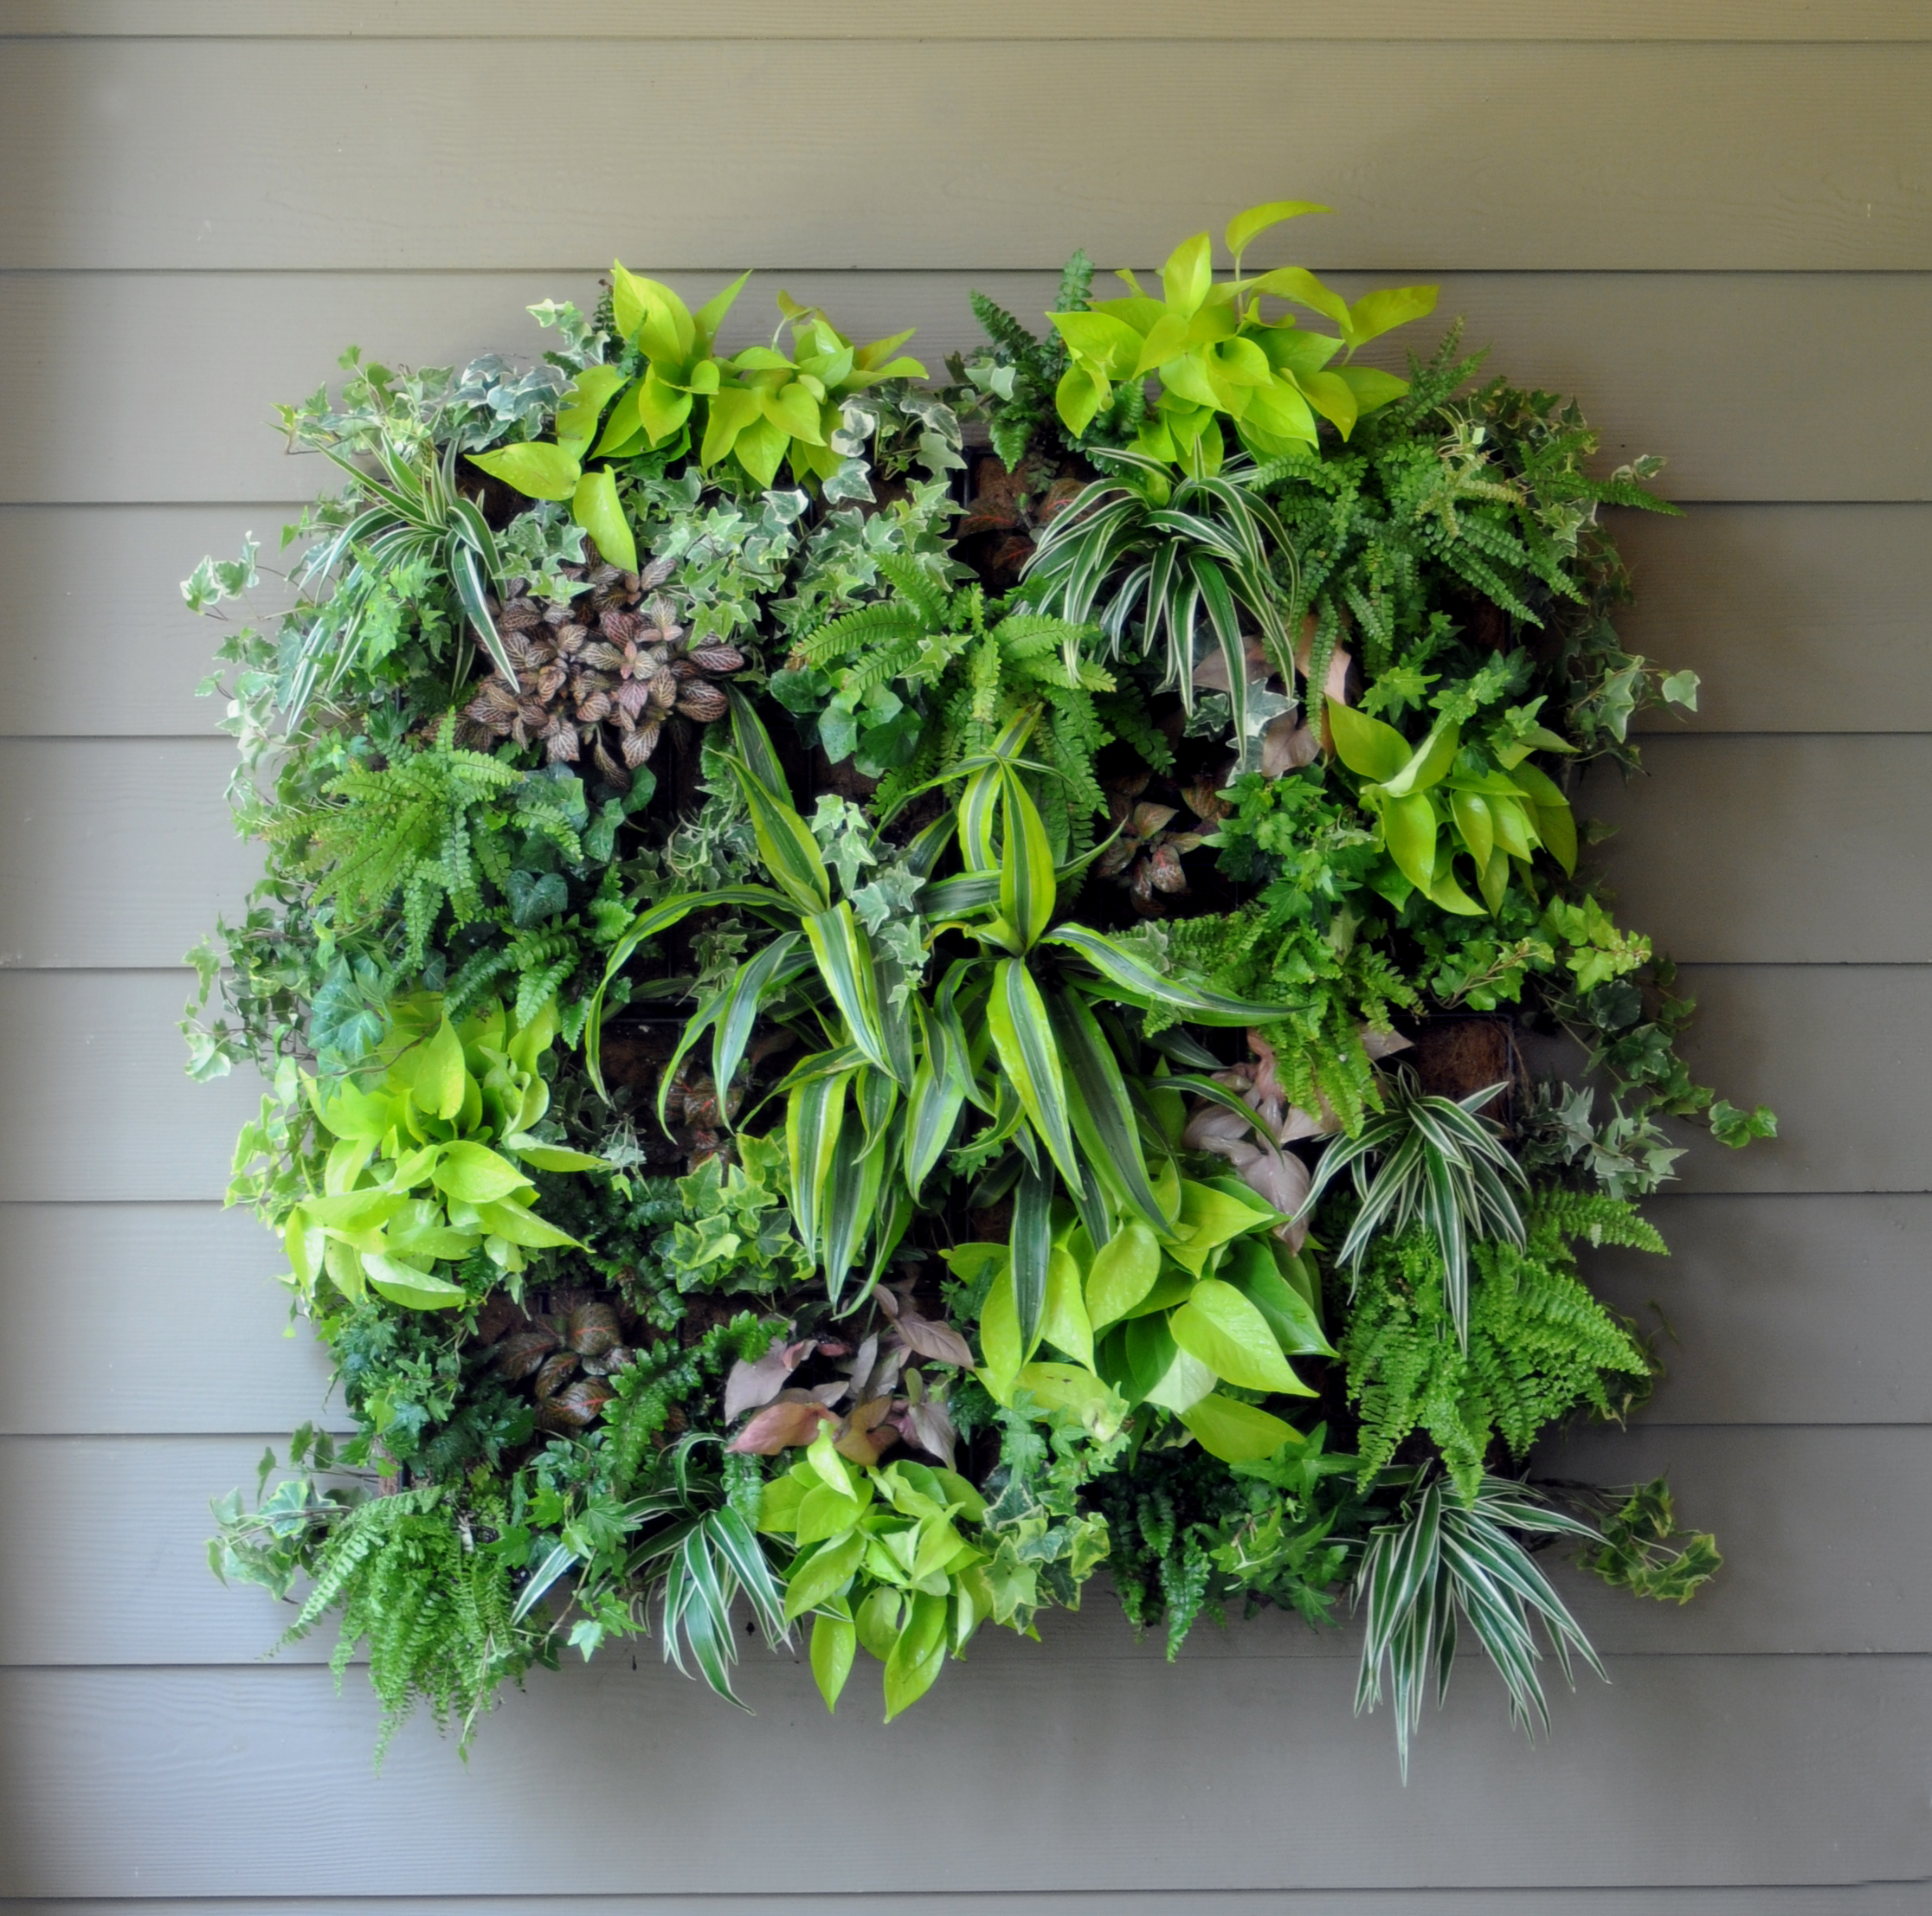 Breathtaking Pamela Crawford Living Wall Planter Liner Living Wall Planters Pamela Crawford Living Wall Planter Liner Wall Garden Ideas garden Indoor Wall Garden Ideas